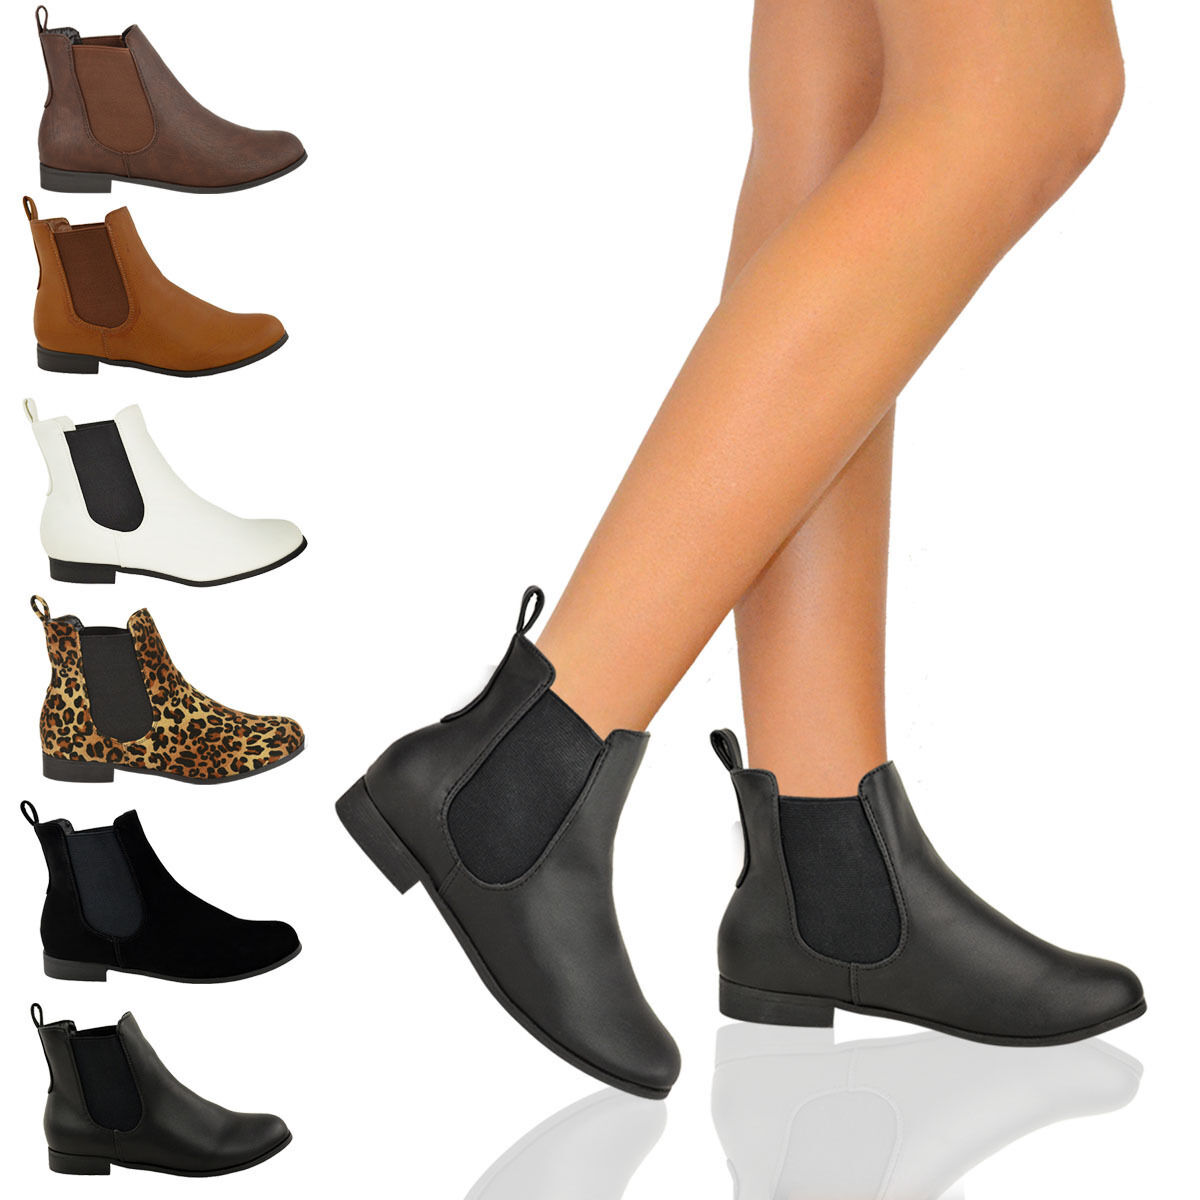 LADIES WOMENS FLAT CHELSEA ANKLE WORK BOOTS CASUAL ELASTIC PULL ON SHOES SIZE